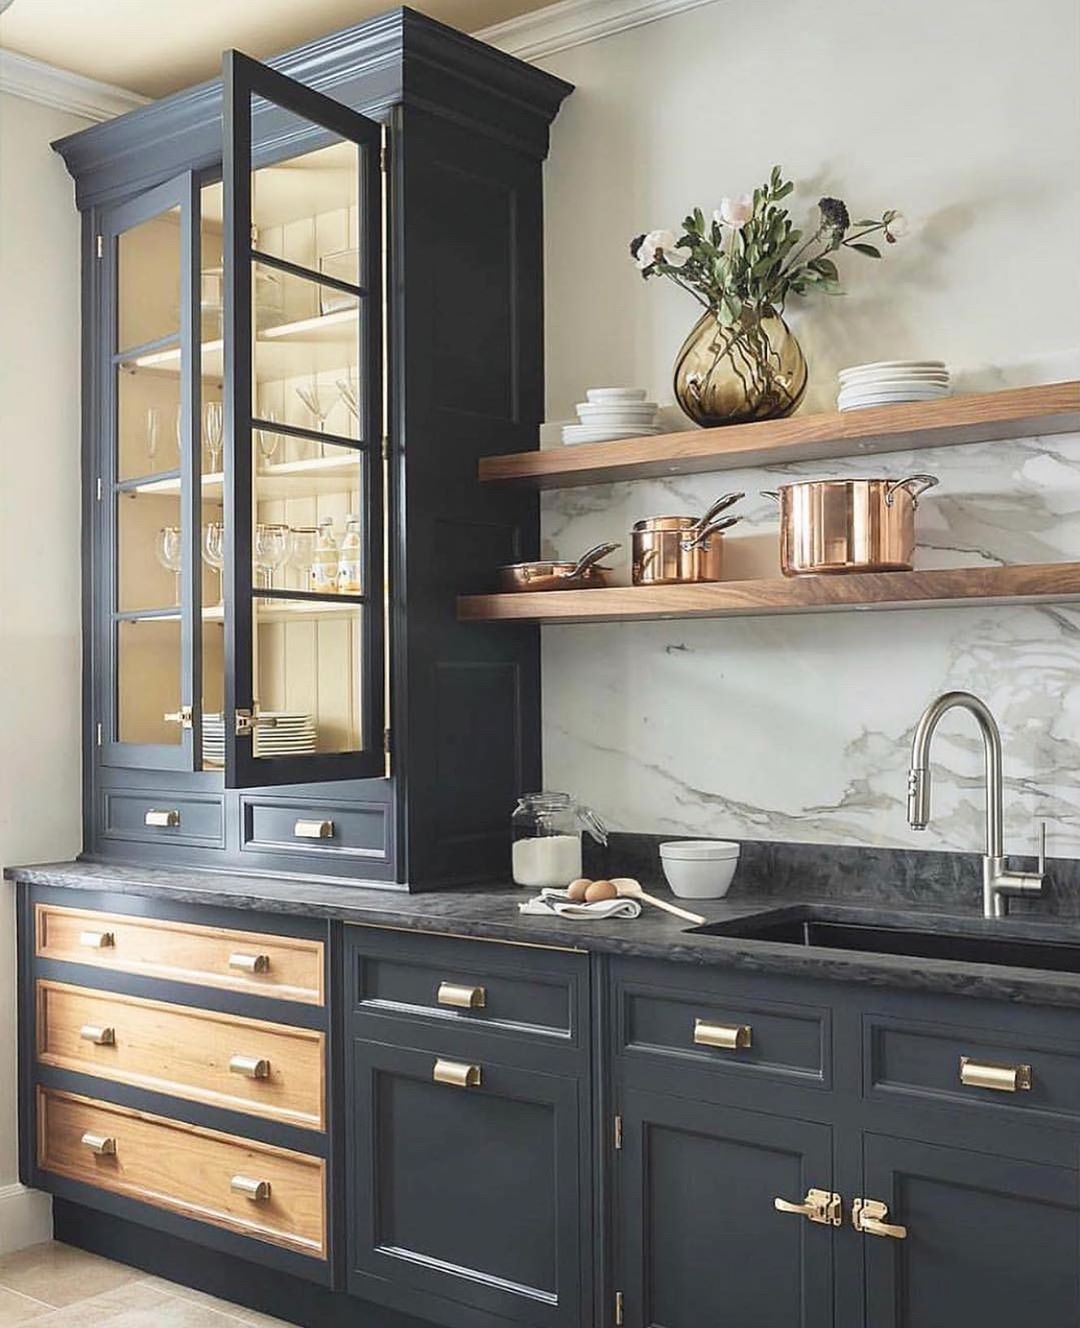 Style Me Pretty Living On Instagram Filed Under How To Make Your Kitchen Look Like A Chic Parisian S Kitchen Design Trends Home Decor Kitchen Modern Kitchen